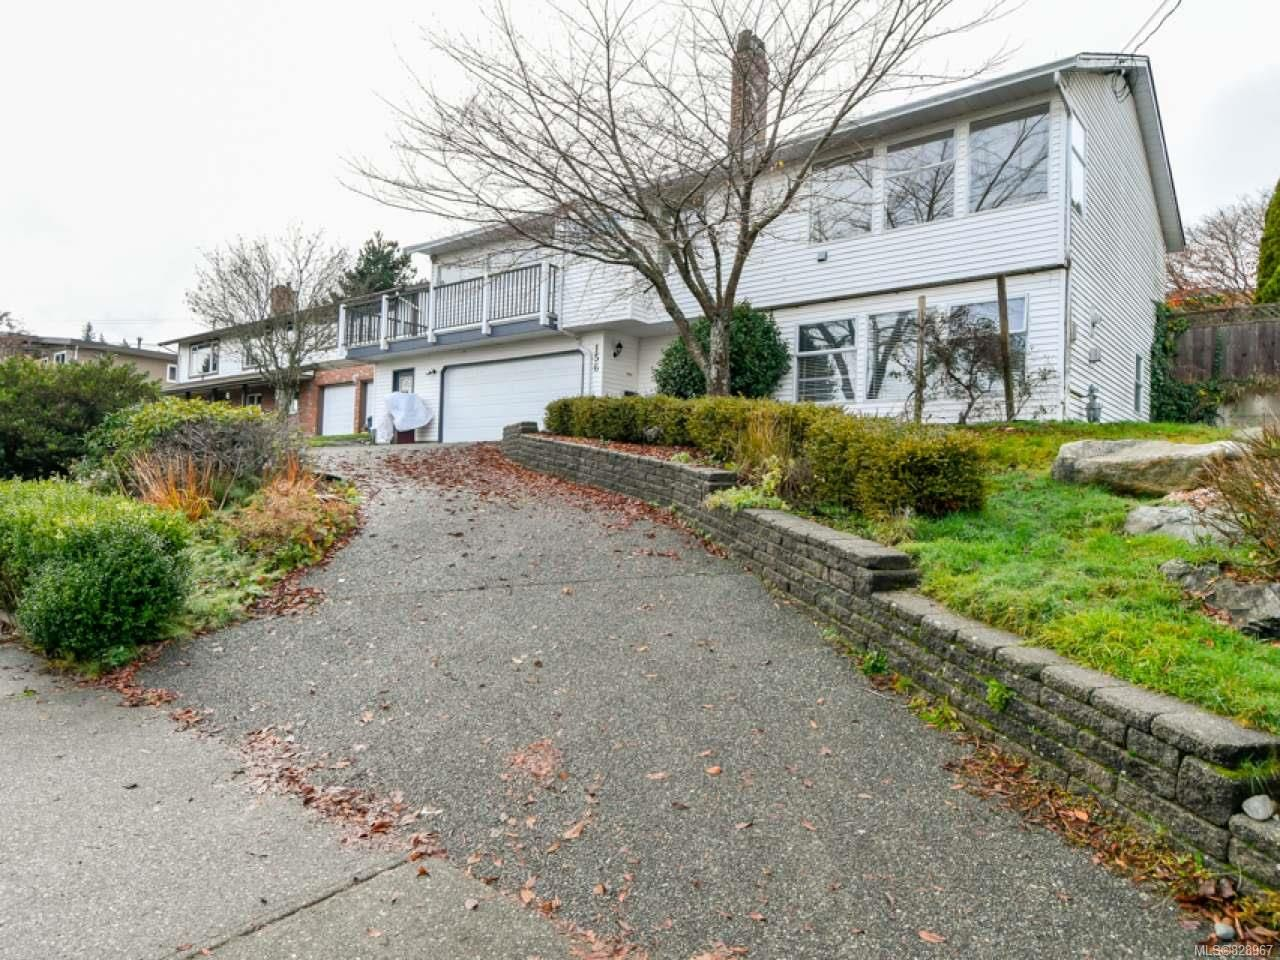 Main Photo: 156 S Murphy St in CAMPBELL RIVER: CR Campbell River Central House for sale (Campbell River)  : MLS®# 828967